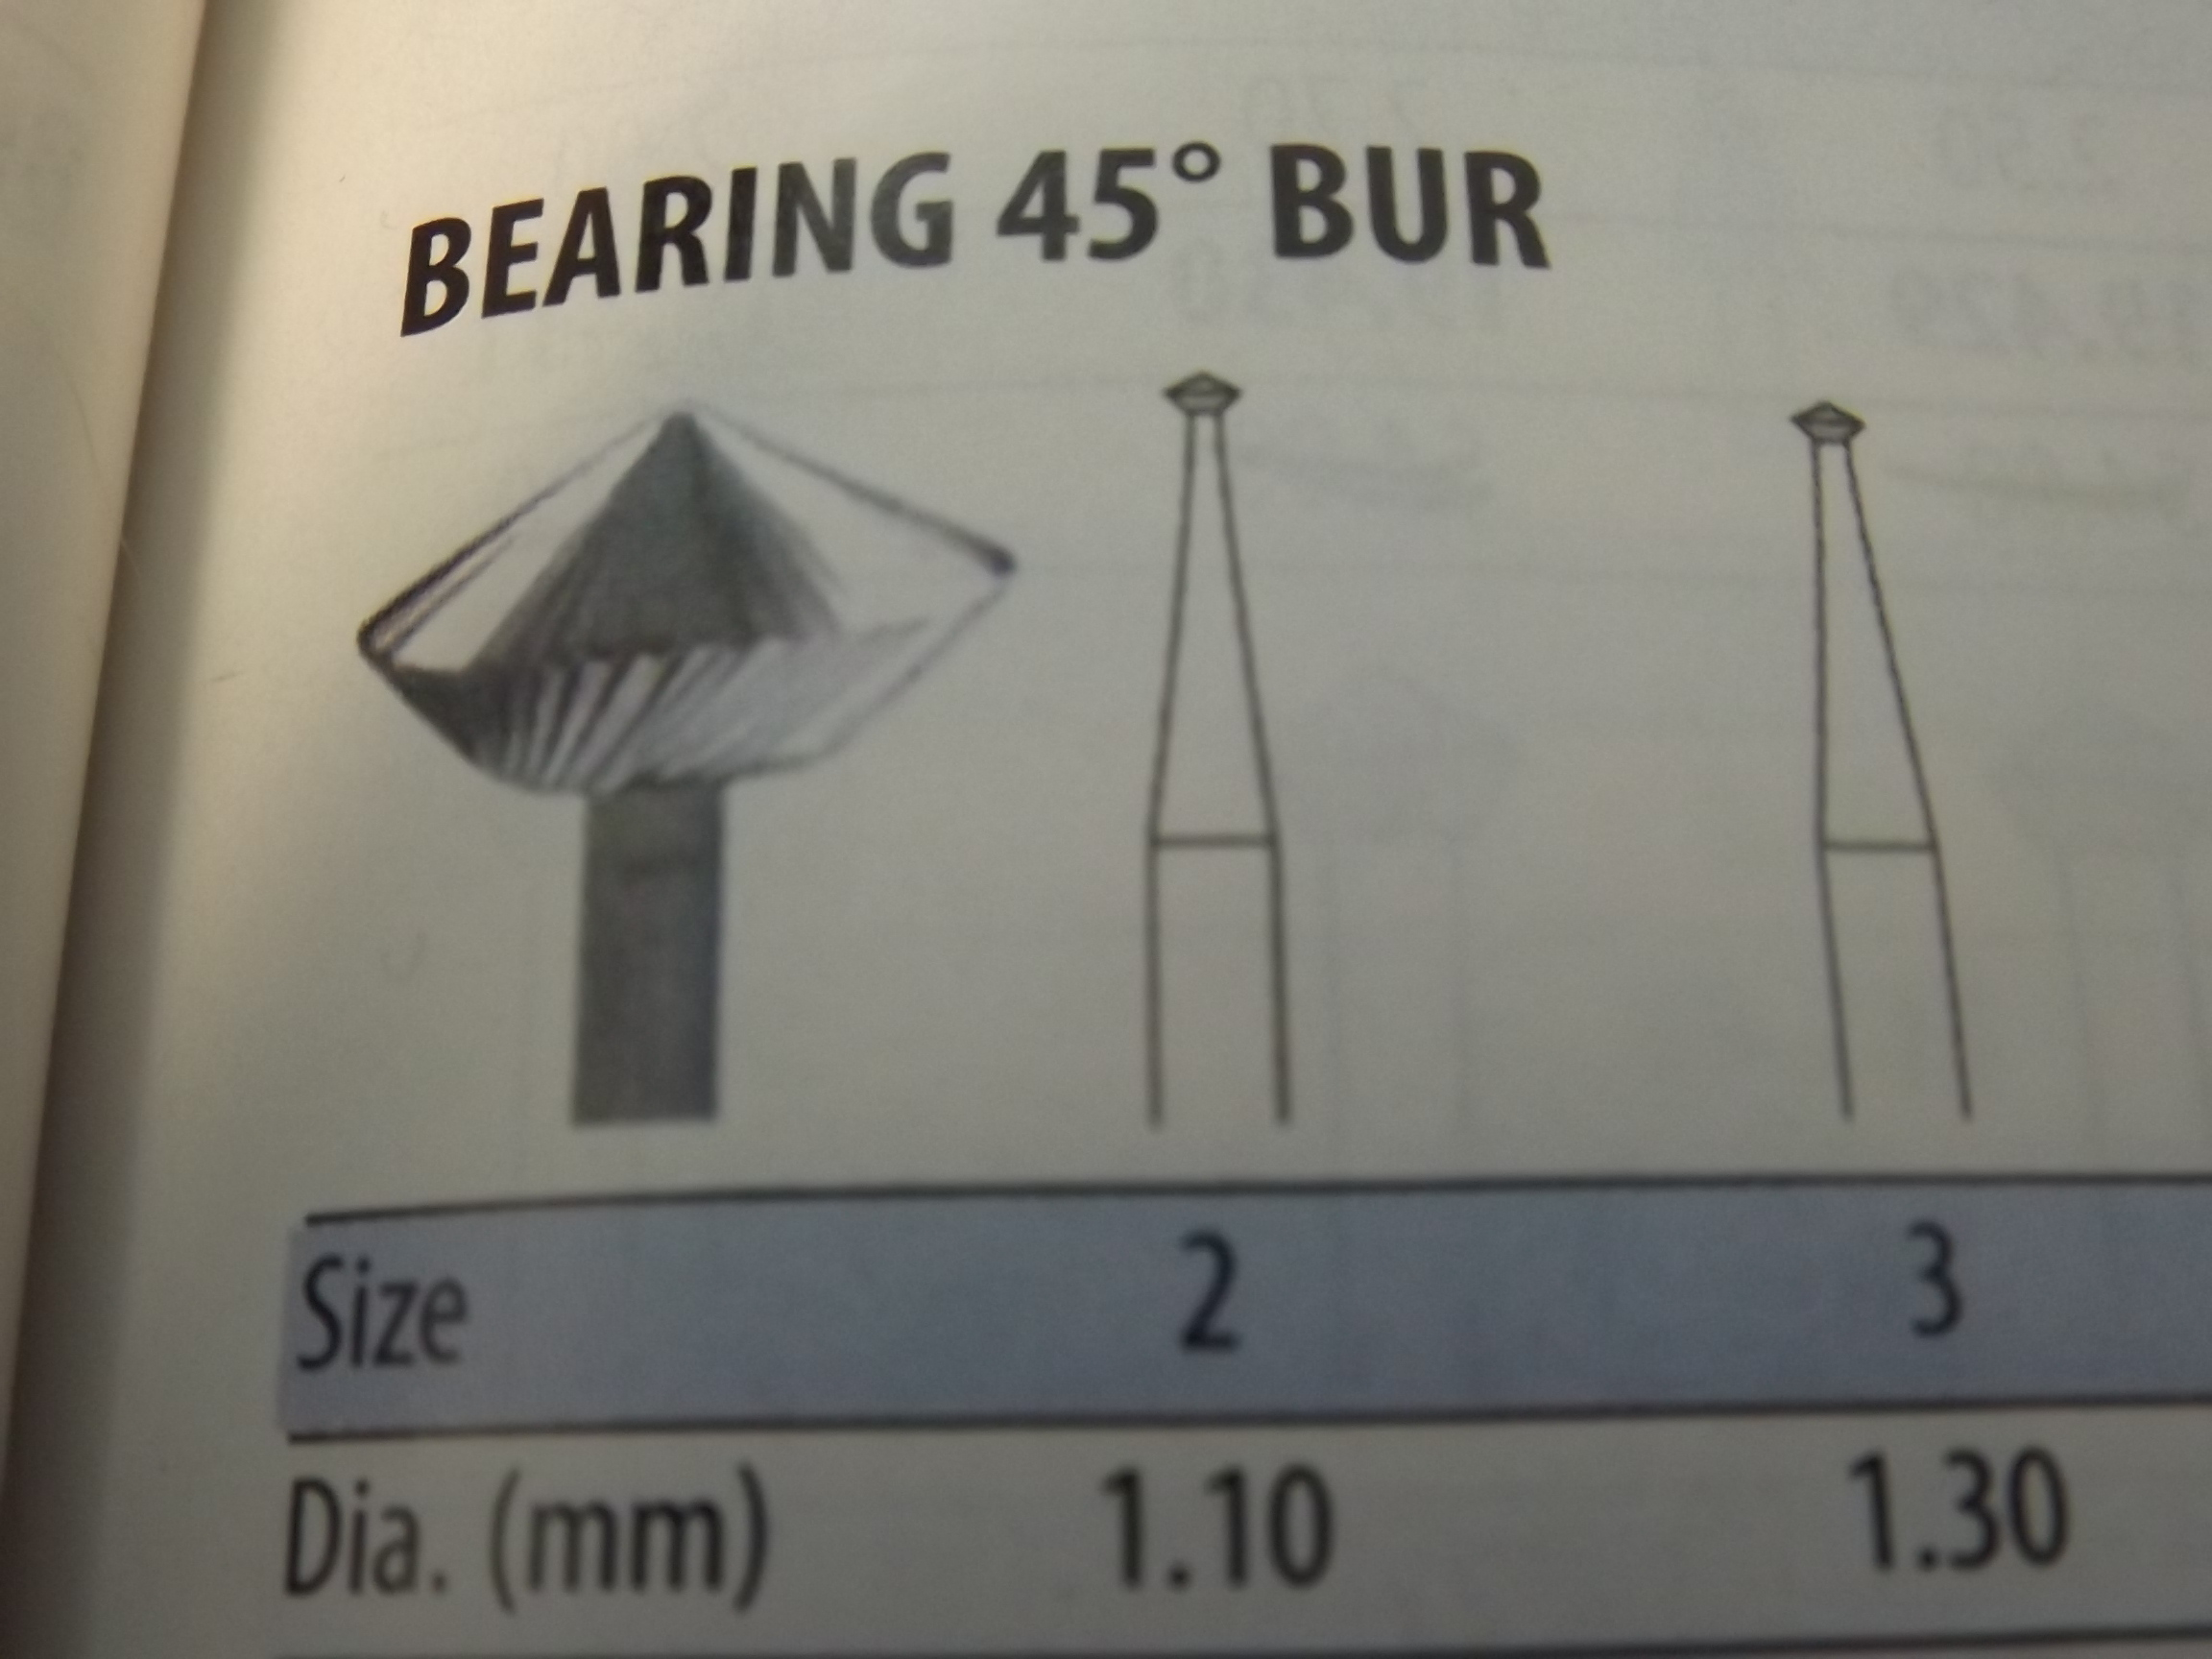 BR763/2 Hi Speed Steel 45* Bearing Burs #2--Grobet #19.382